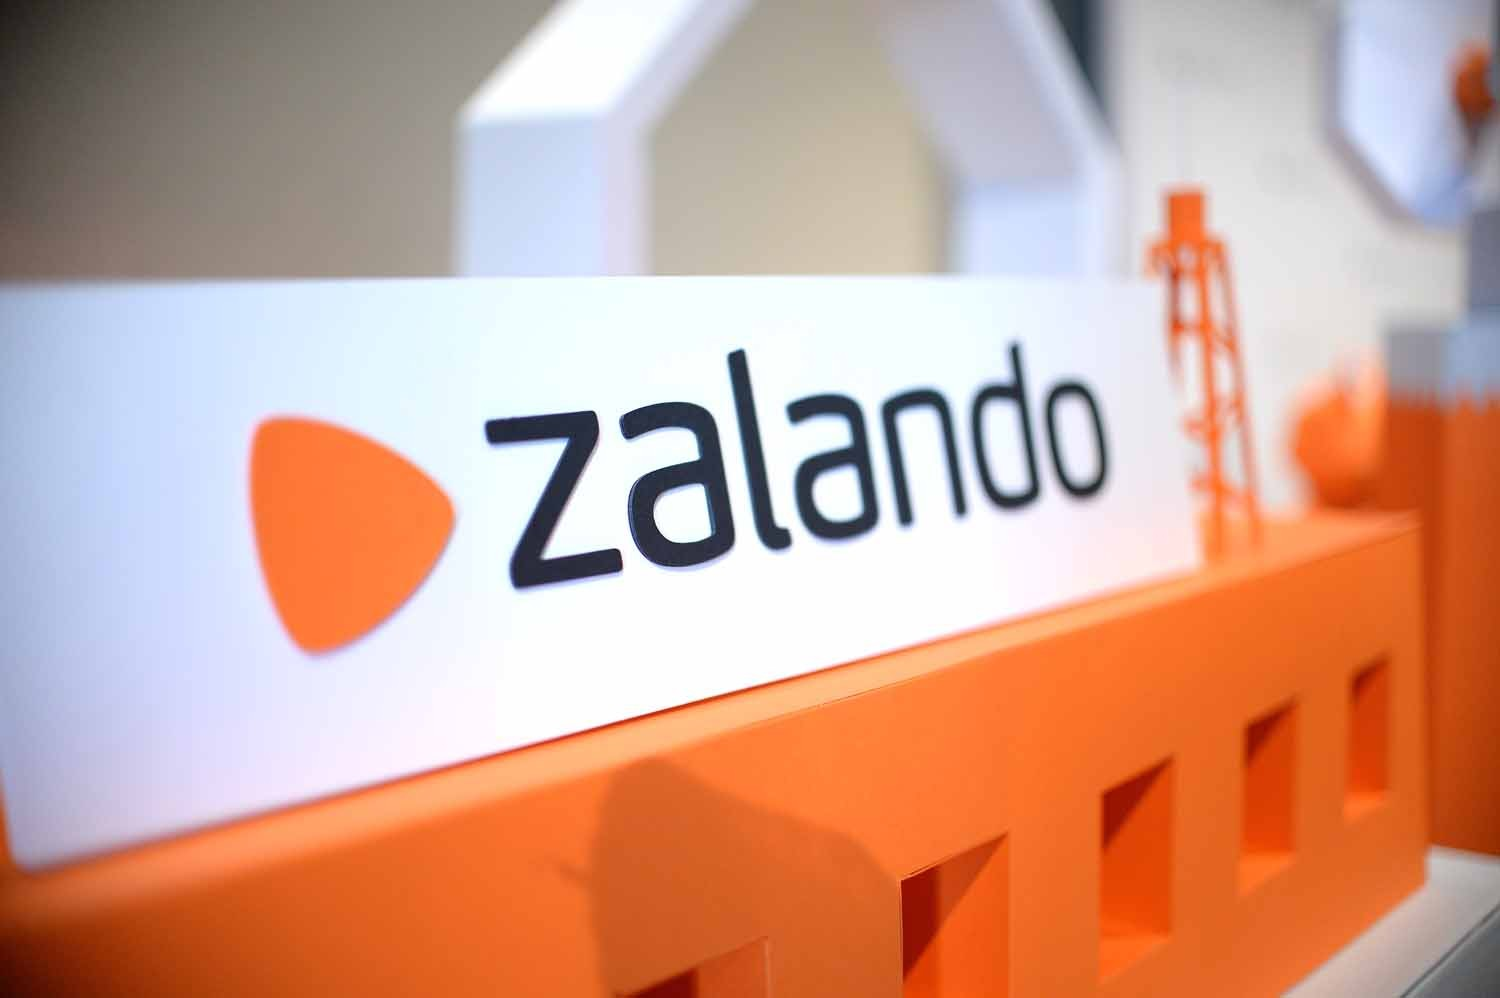 Zalando Site: Everything Must Go - Bizim Kiez English